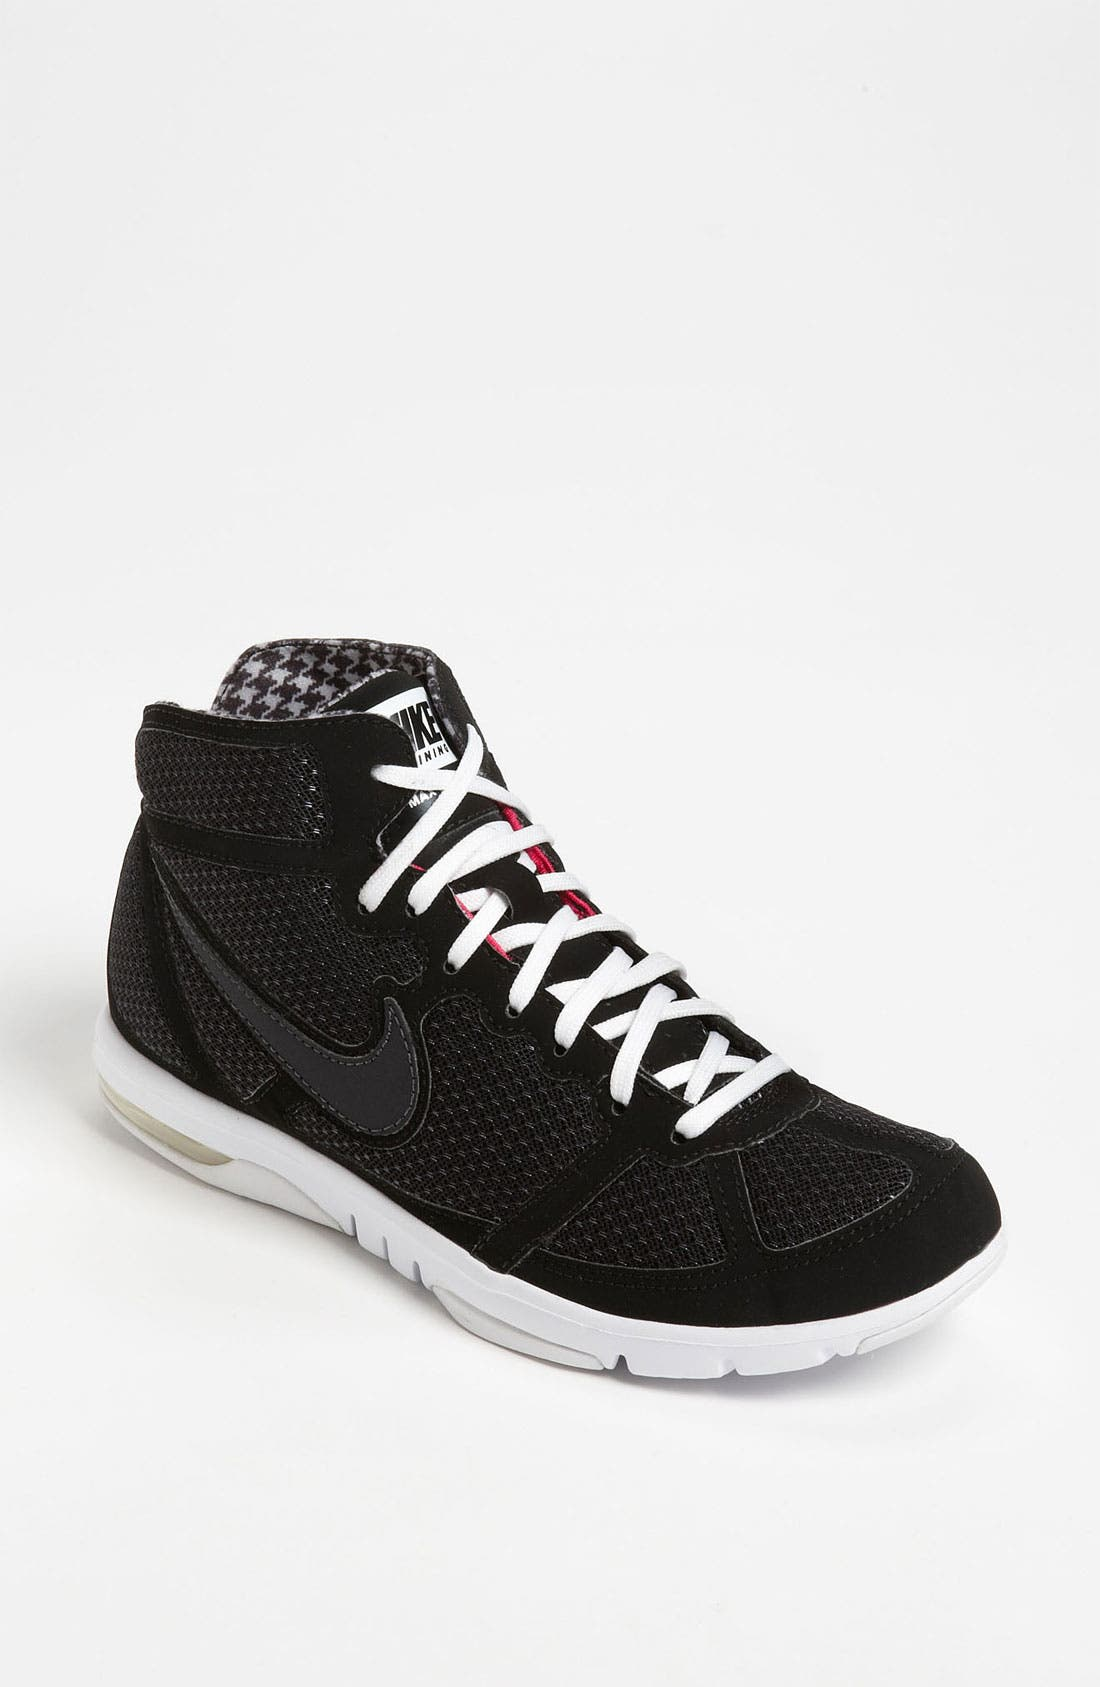 Main Image - Nike 'Air Max S2S Mid' Training Shoe (Women)